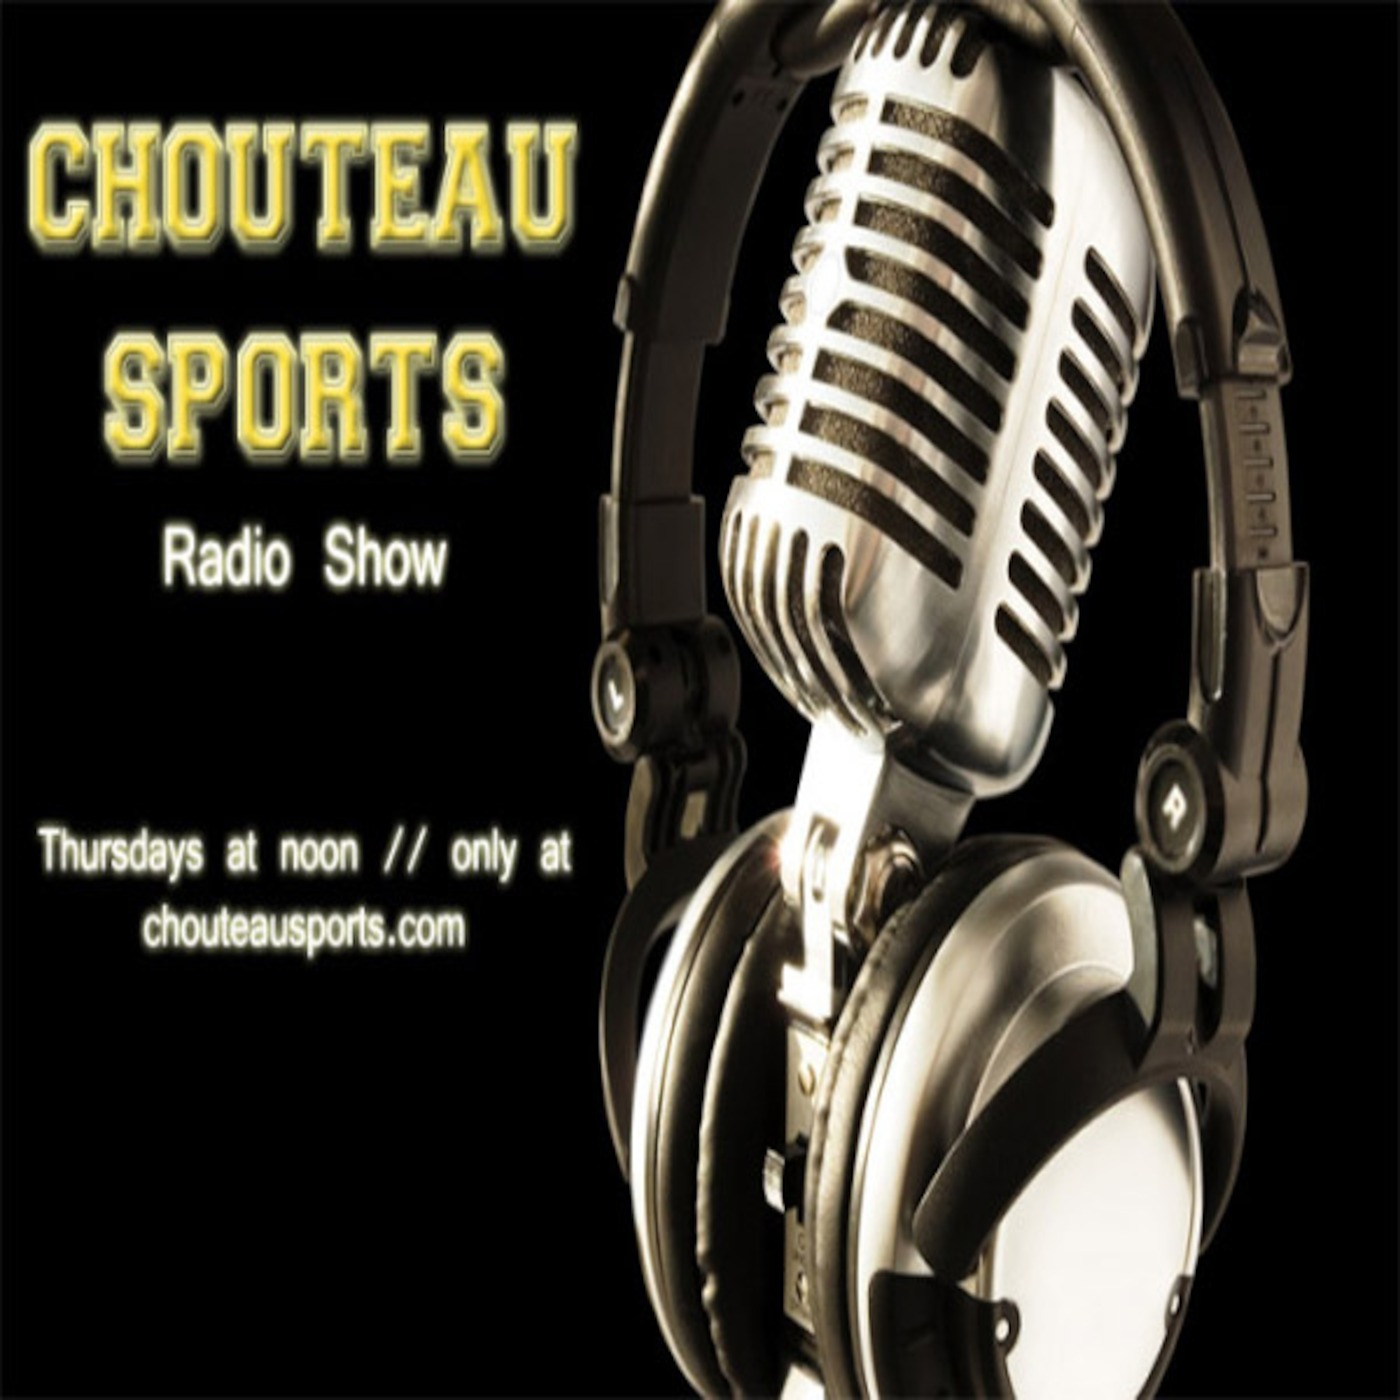 Chouteau Sports' Podcast